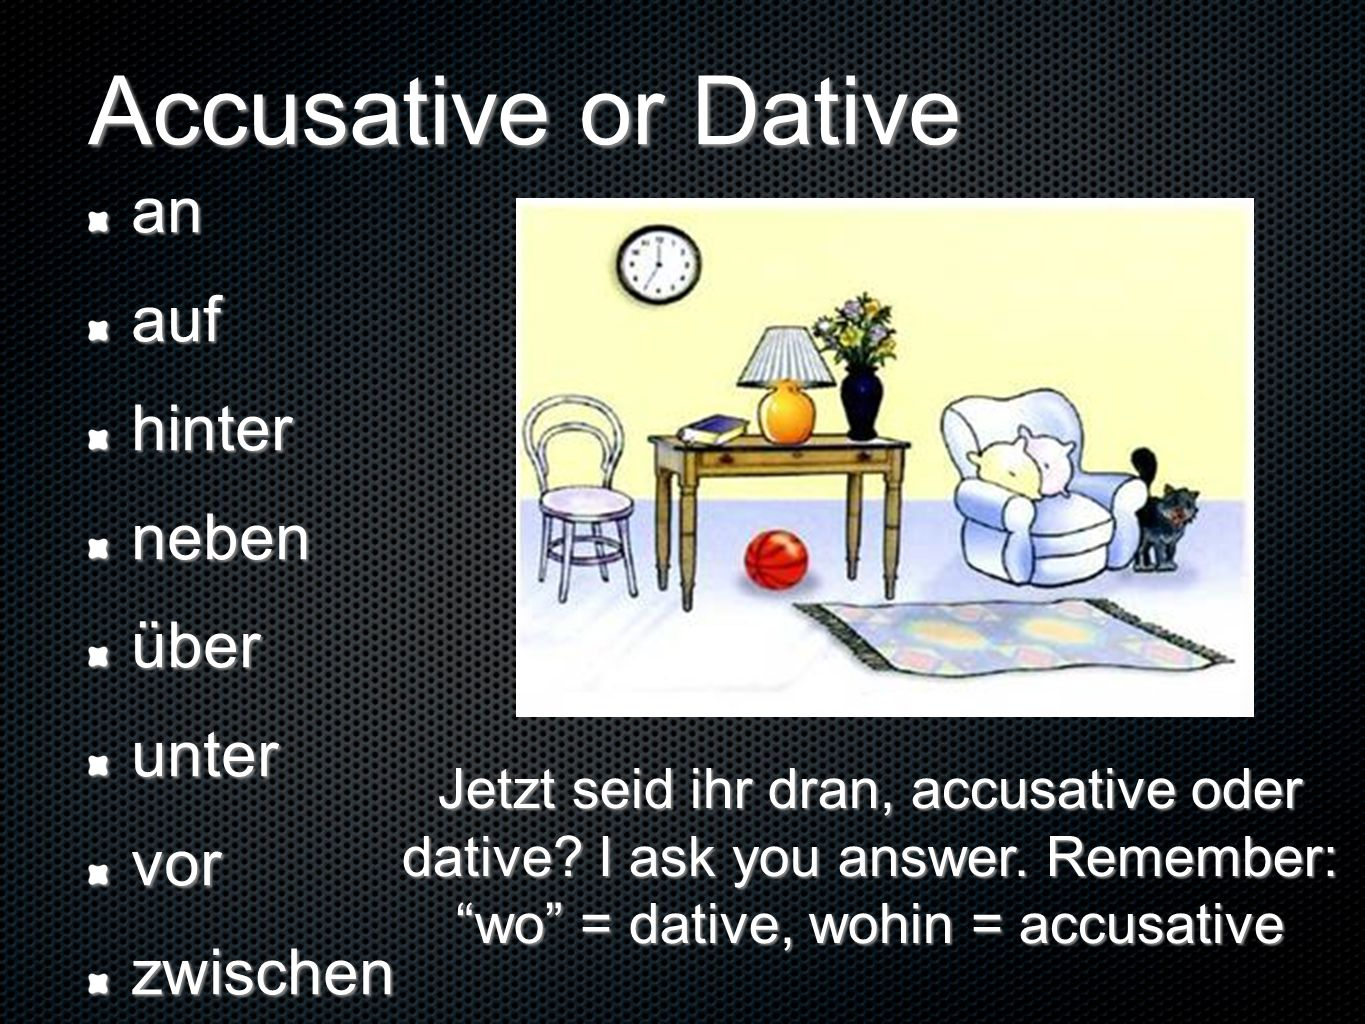 wo = dative, wohin = accusative